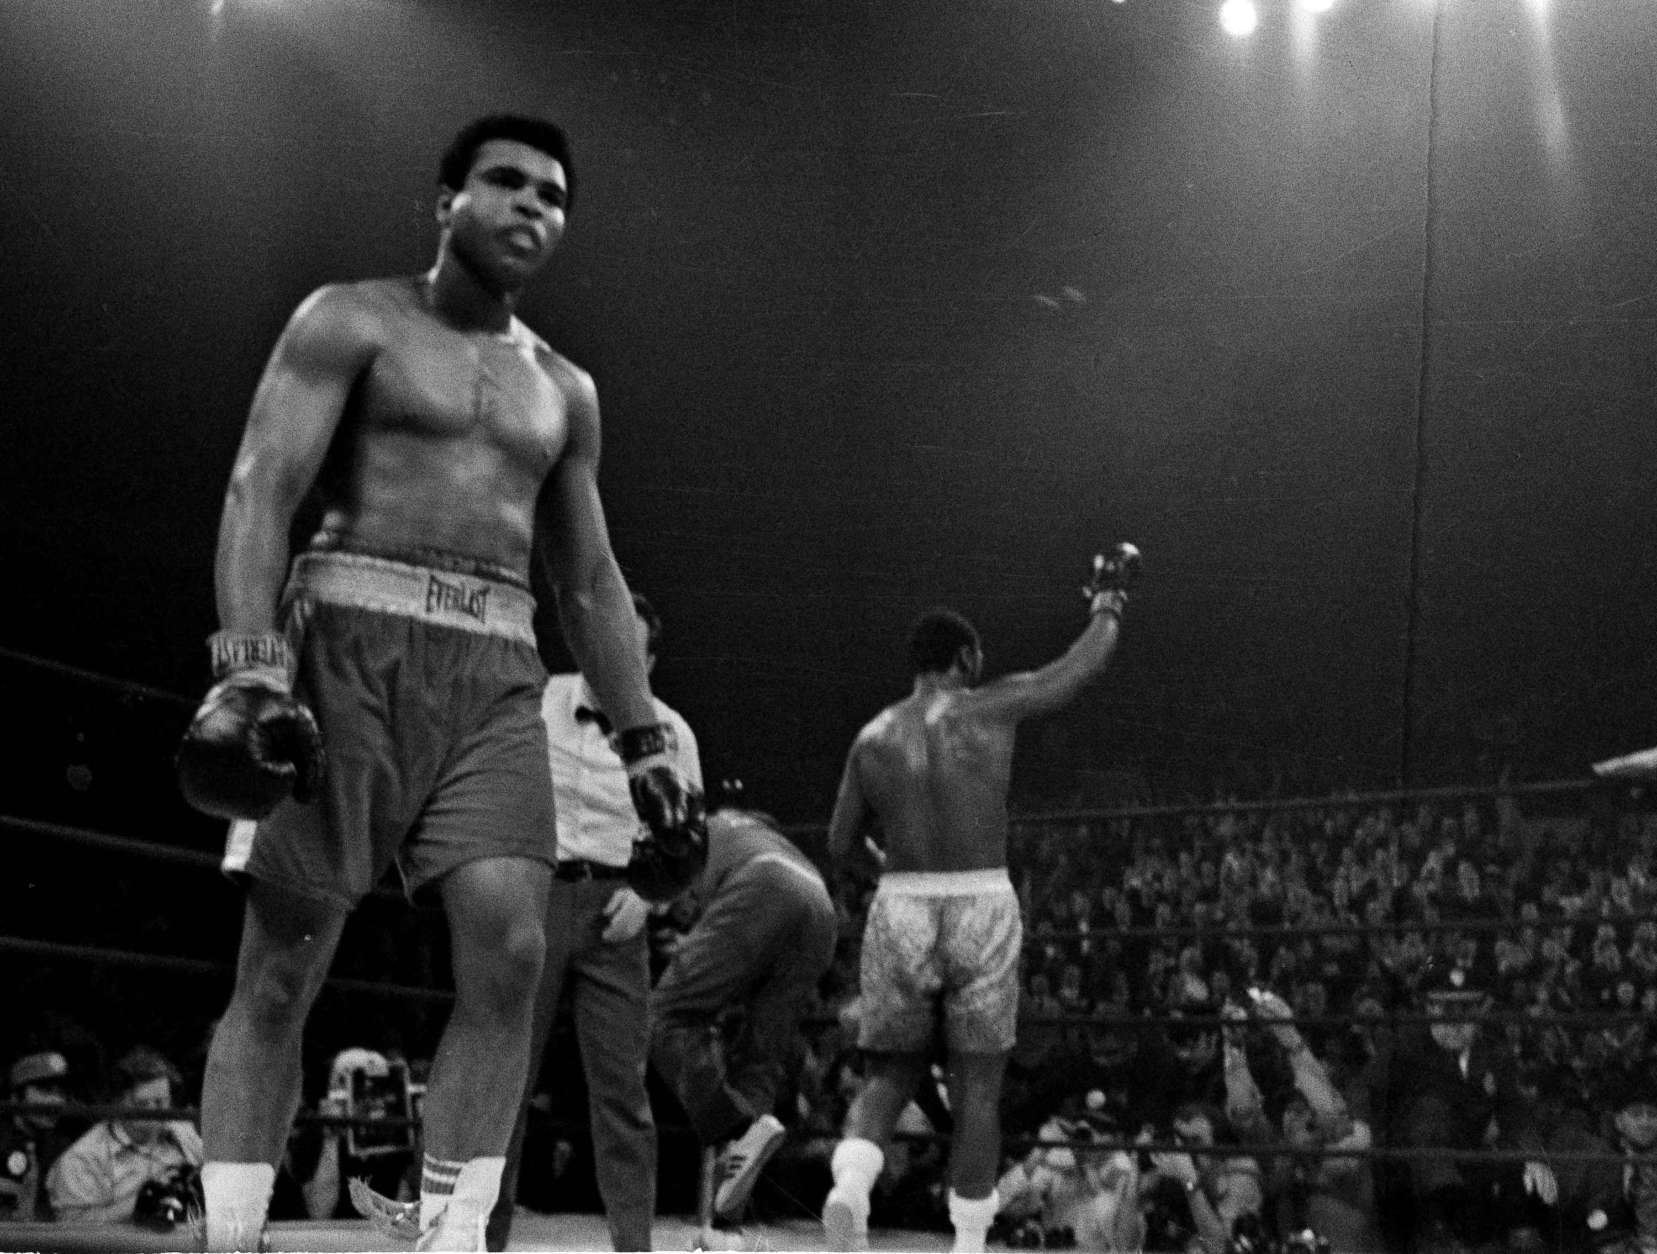 A battered Muhammad Ali walks back to his corner as a triumphant Joe Frazier, background, celebrates his title defense after the 15th round of their title bout in New York, March 8, 1971.  After the bout, Ali was taken to have his injured jaw X-rayed.  (AP Photo)